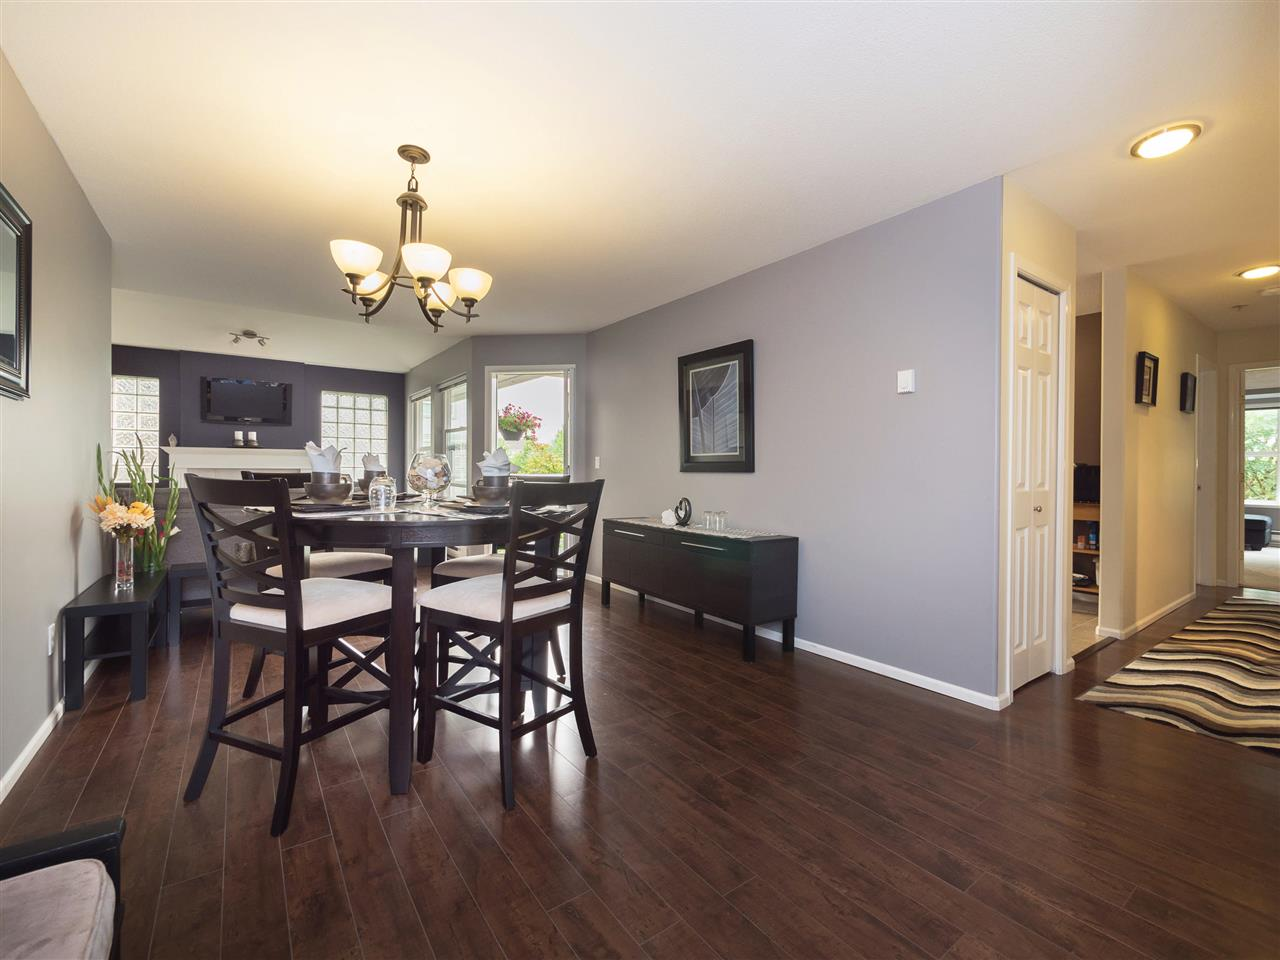 Condo Apartment at 301 1558 GRANT AVENUE, Unit 301, Port Coquitlam, British Columbia. Image 6